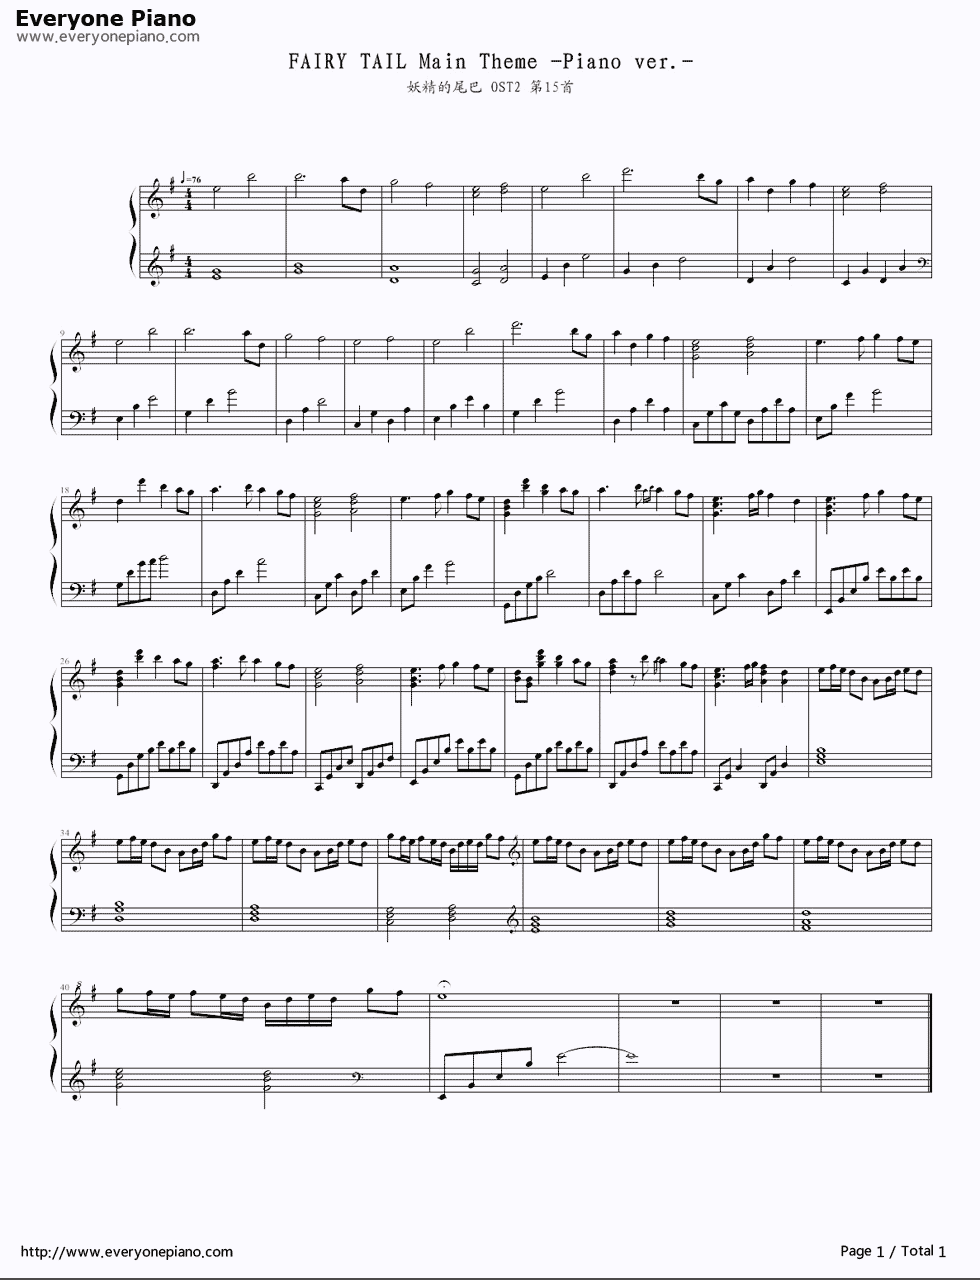 fairy tail ost piano ver stave preview 1 piano sheets